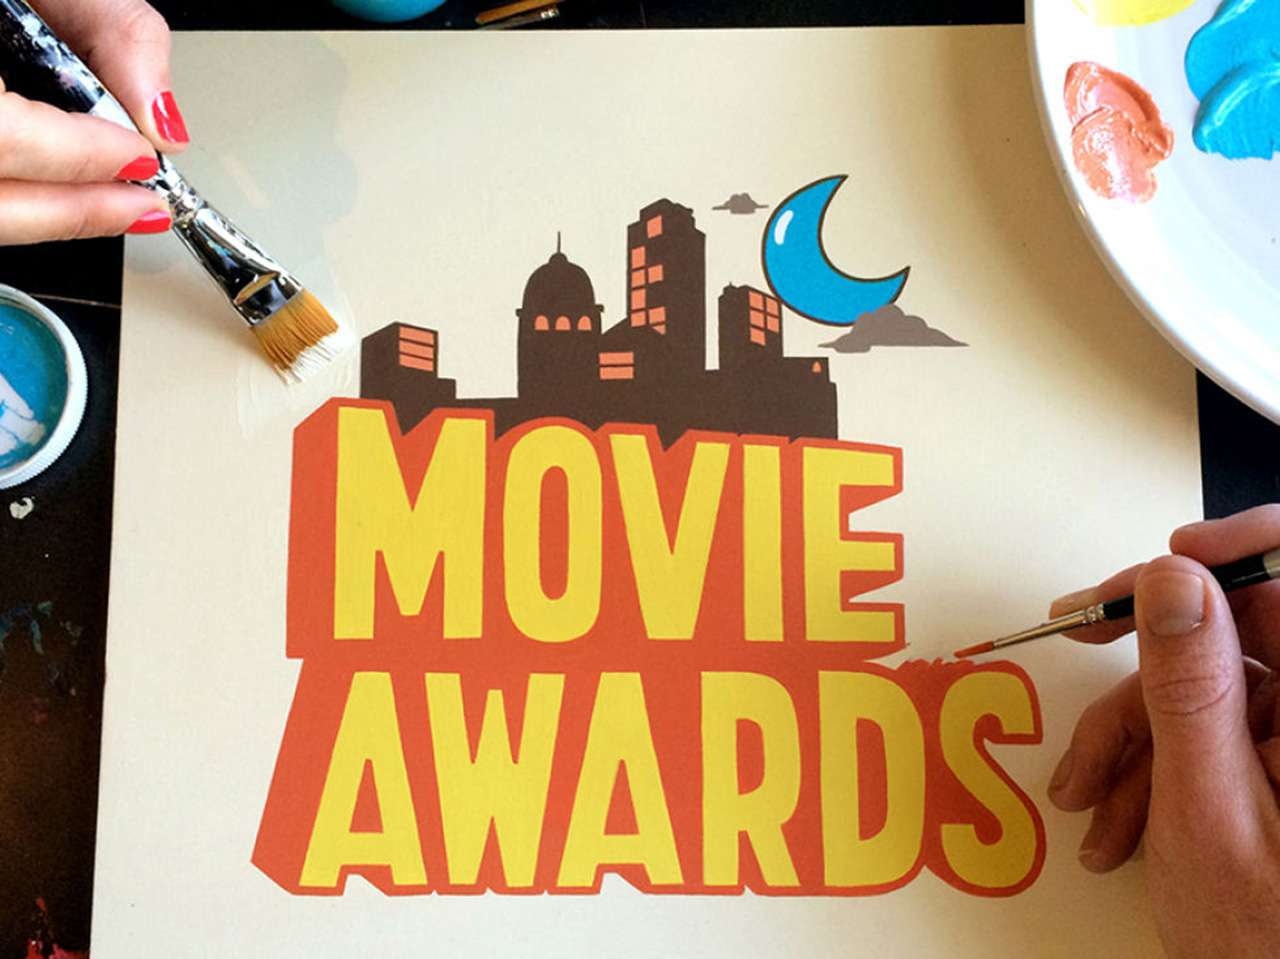 Los MTV Movie Awards 2015 se llevarán a cabo el domingo 12 de abril. Foto: MTV